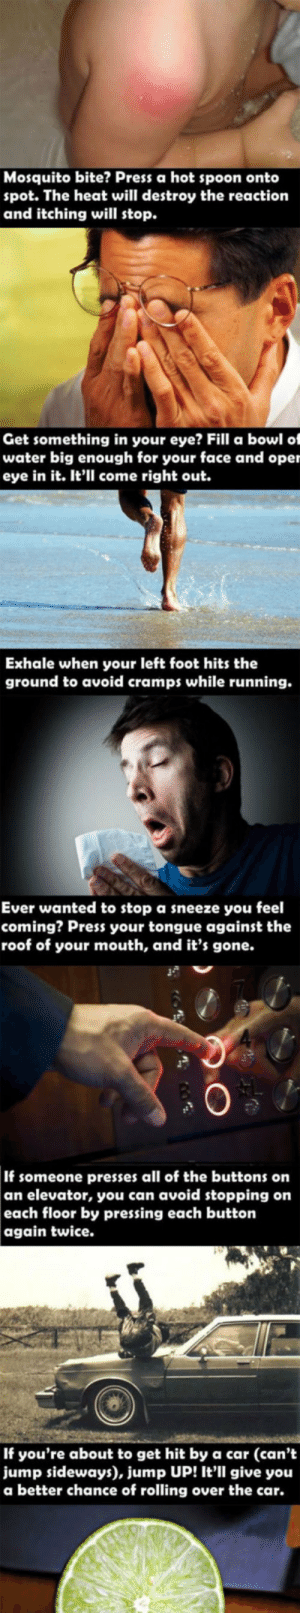 laughoutloud-club:  I Bet You Didn't Know: Mosquito bite? Press a hot spoon onto  spot. The heat will destroy the reaction  and itching will stop.  Get something in your eye? Fill a bowl of  water big enough for your face and oper  eye in it. It'll come right out.  Exhale when your left foot hits the  ground to avoid cramps while running.  Ever wanted to stop a sneeze you feel  coming? Press your tongue against the  roof of your mouth, and it's gone.  3  0  If someone presses all of the buttons on  an elevator, you can avoid stopping on  each floor by pressing each button  again twice.  If you're about to get hit by a car (can't  jump sideways), jump UP! It'll give you  a better chance of rolling over the car. laughoutloud-club:  I Bet You Didn't Know